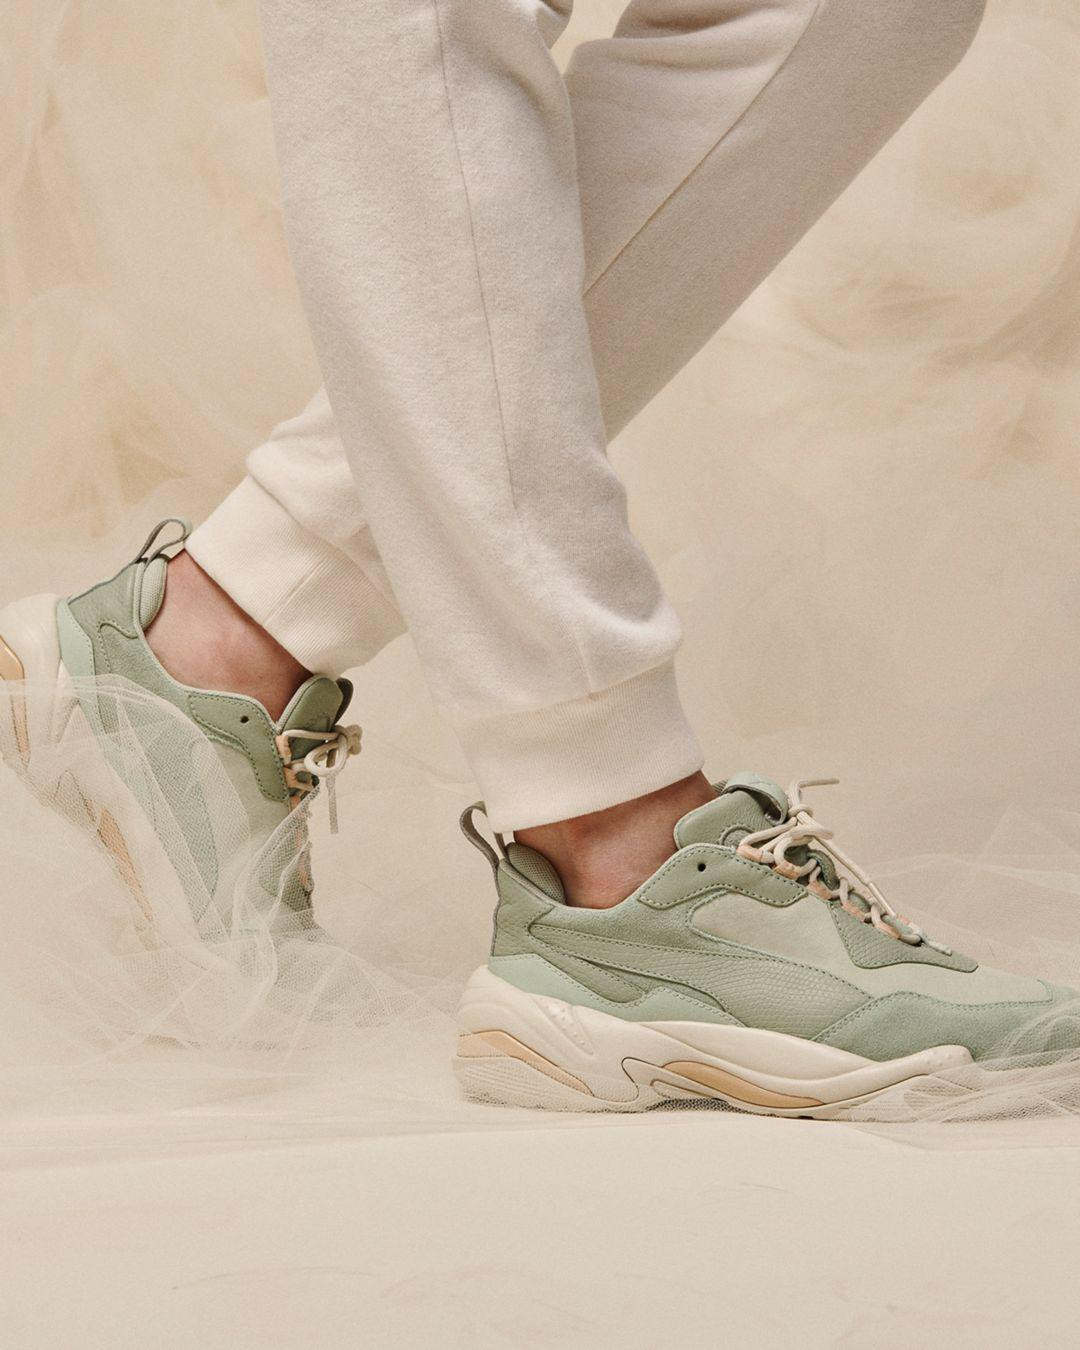 Lyst - PUMA Thunder Trainers in Green 2e819c2c6